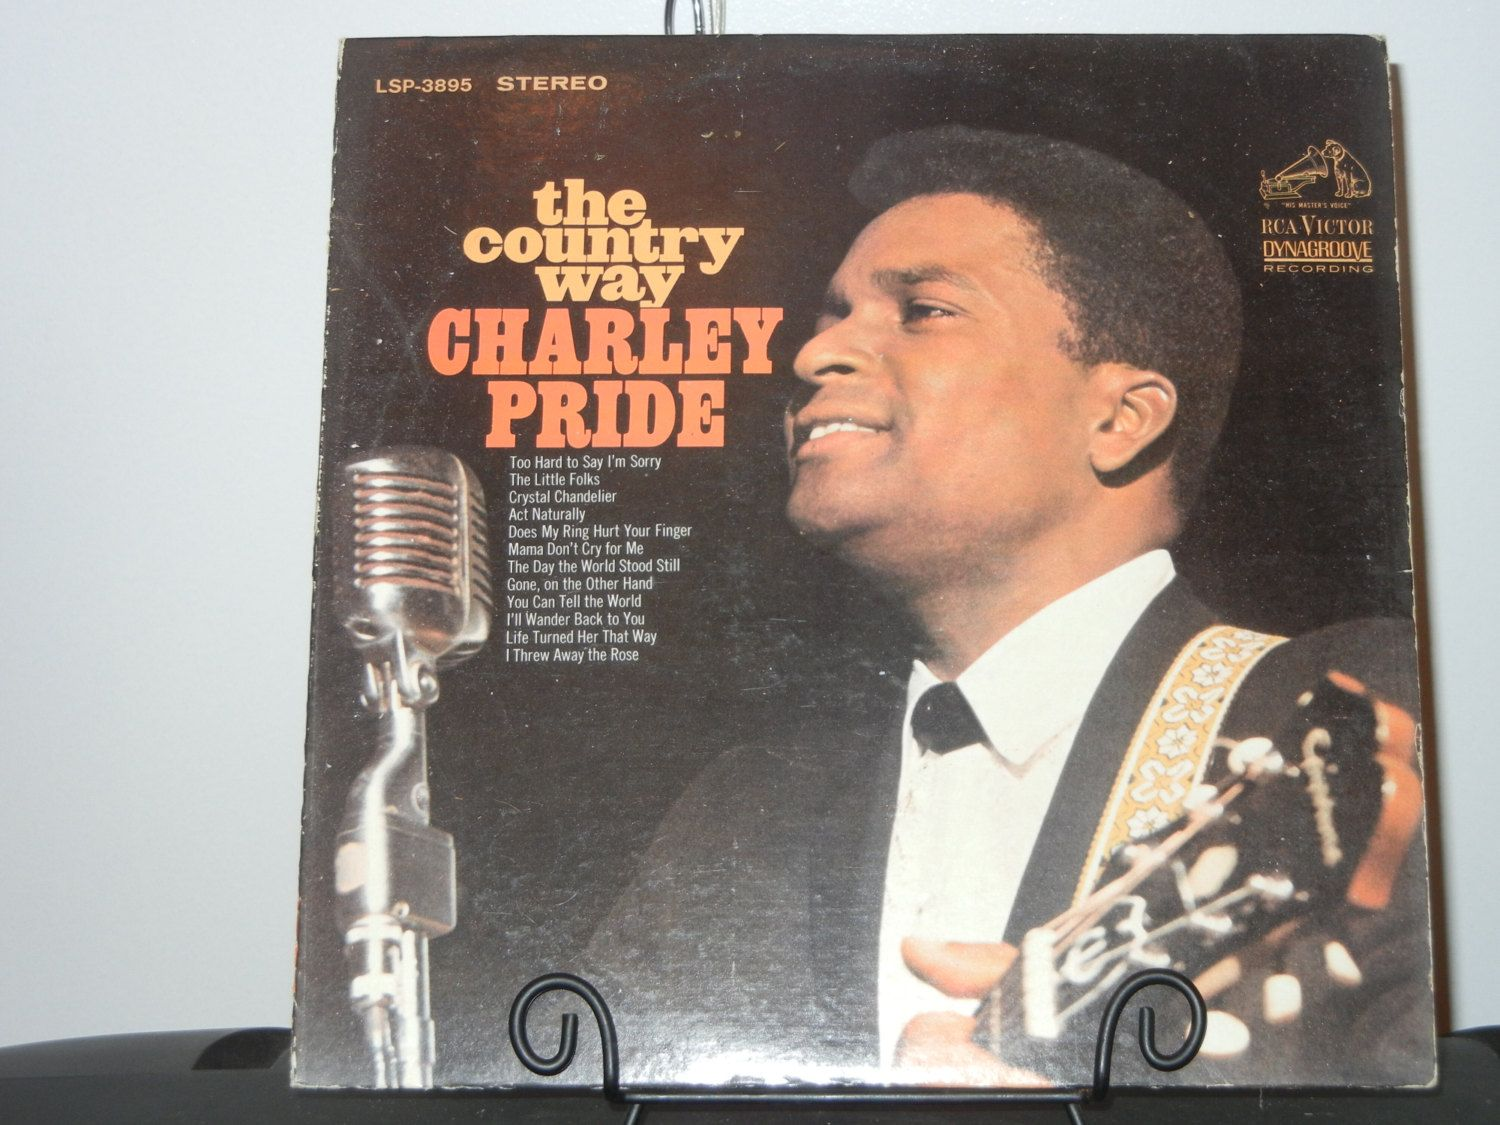 The country way vintage vinyl album by charley pride from 1967 by the country way vintage vinyl album by charley pride from 1967 by gailspopcycle on etsy arubaitofo Images